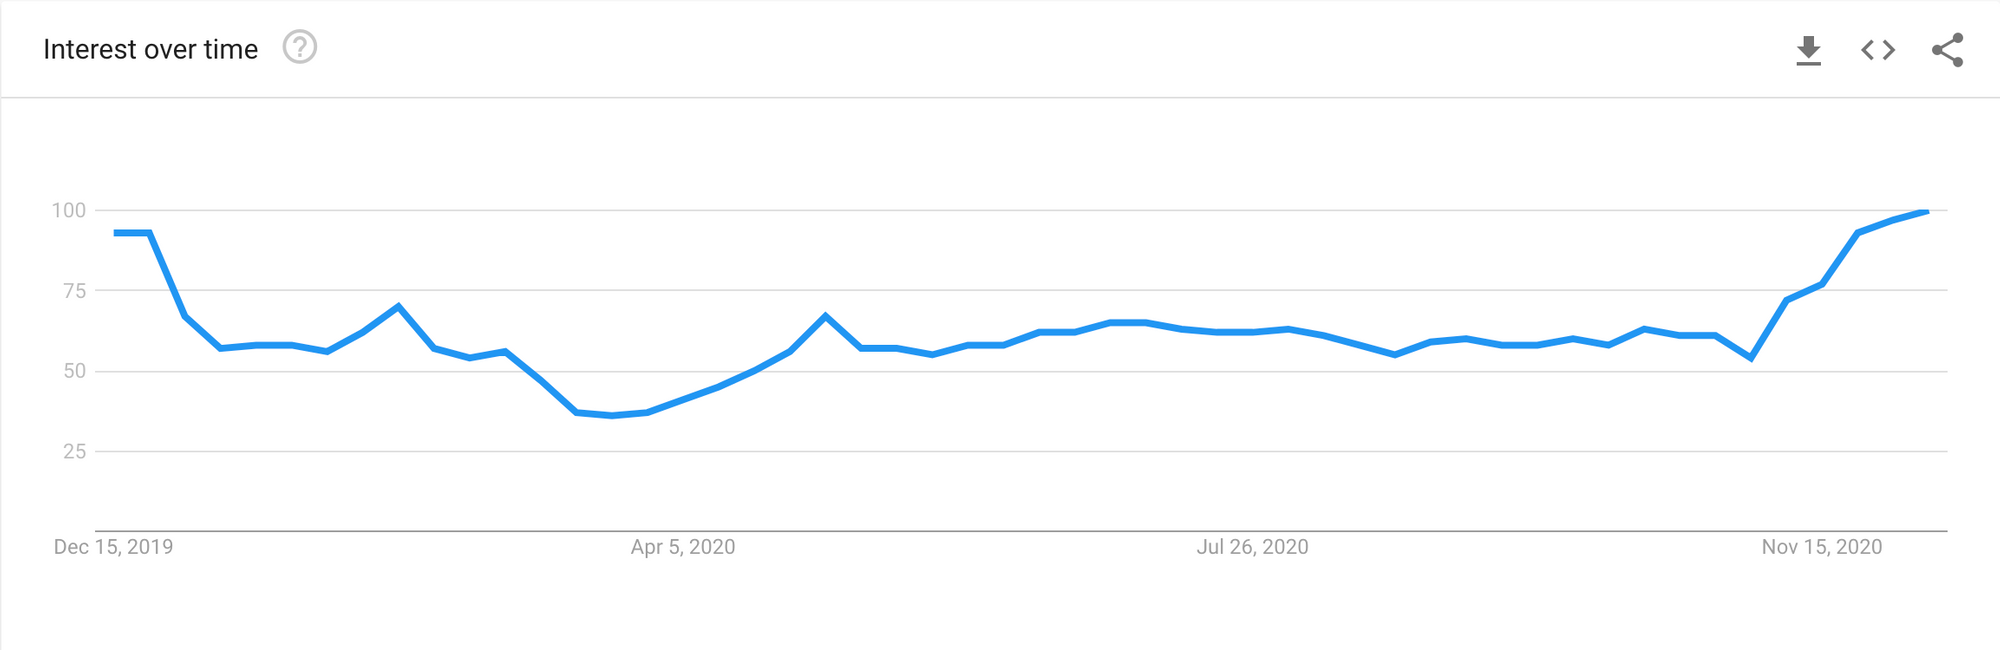 Selling jewelry on Etsy google trends graph